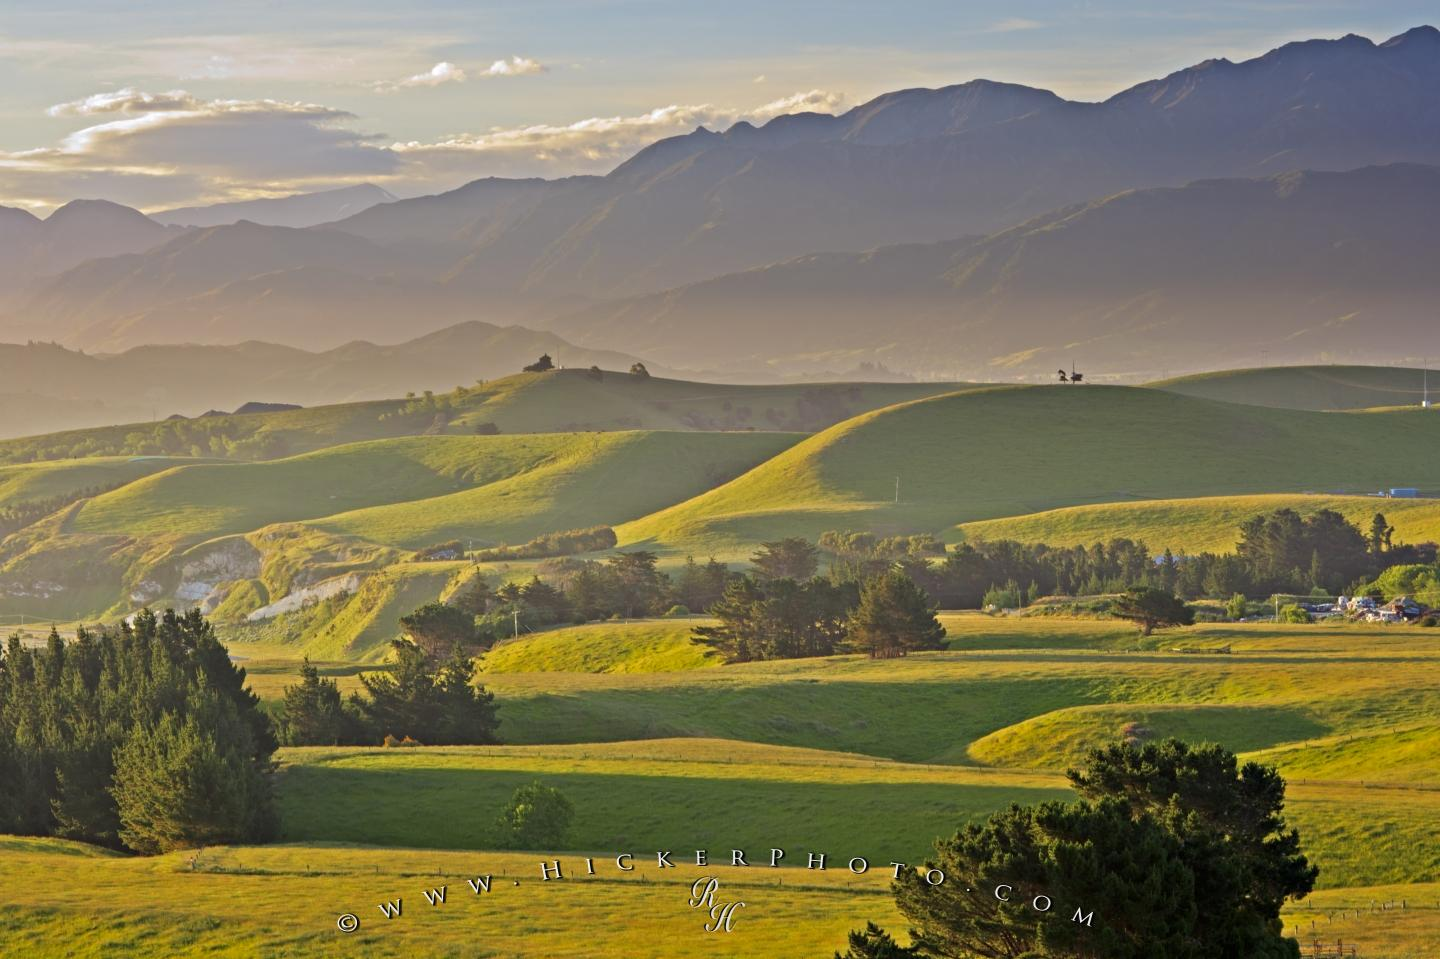 Free wallpaper background canterbury landscape new zealand for Nz landscape